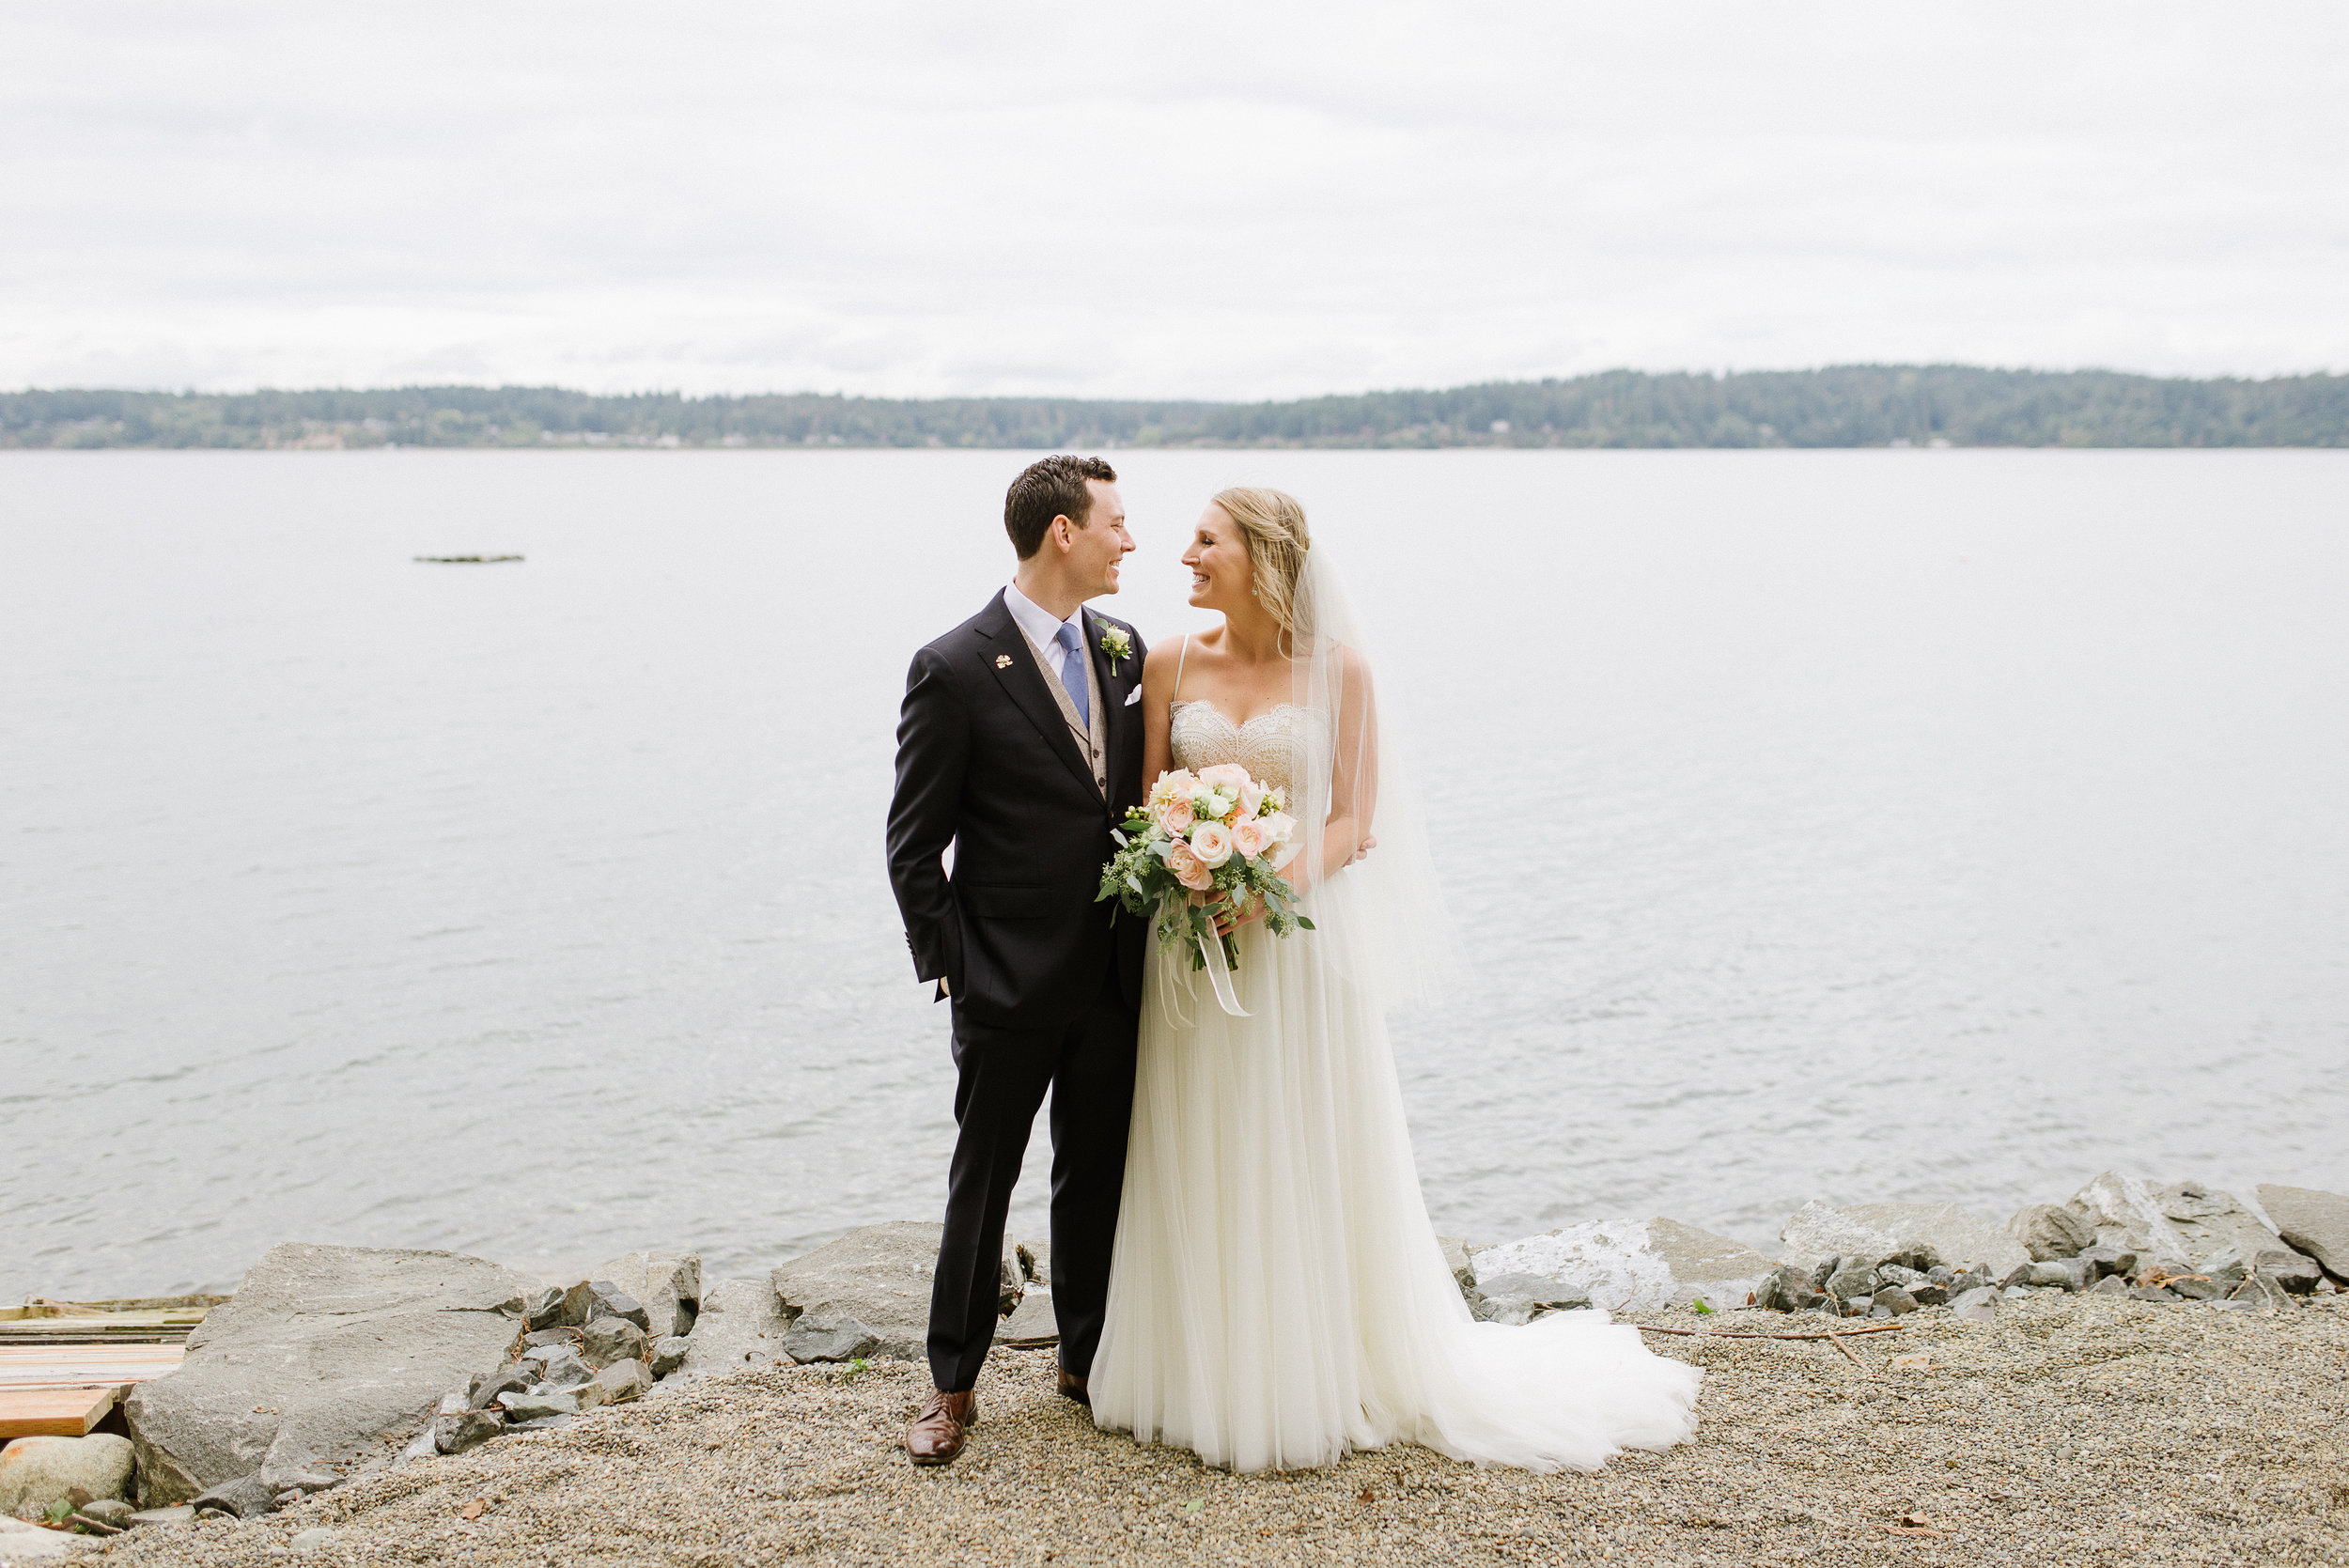 Gig Harbor wedding portrait on beach